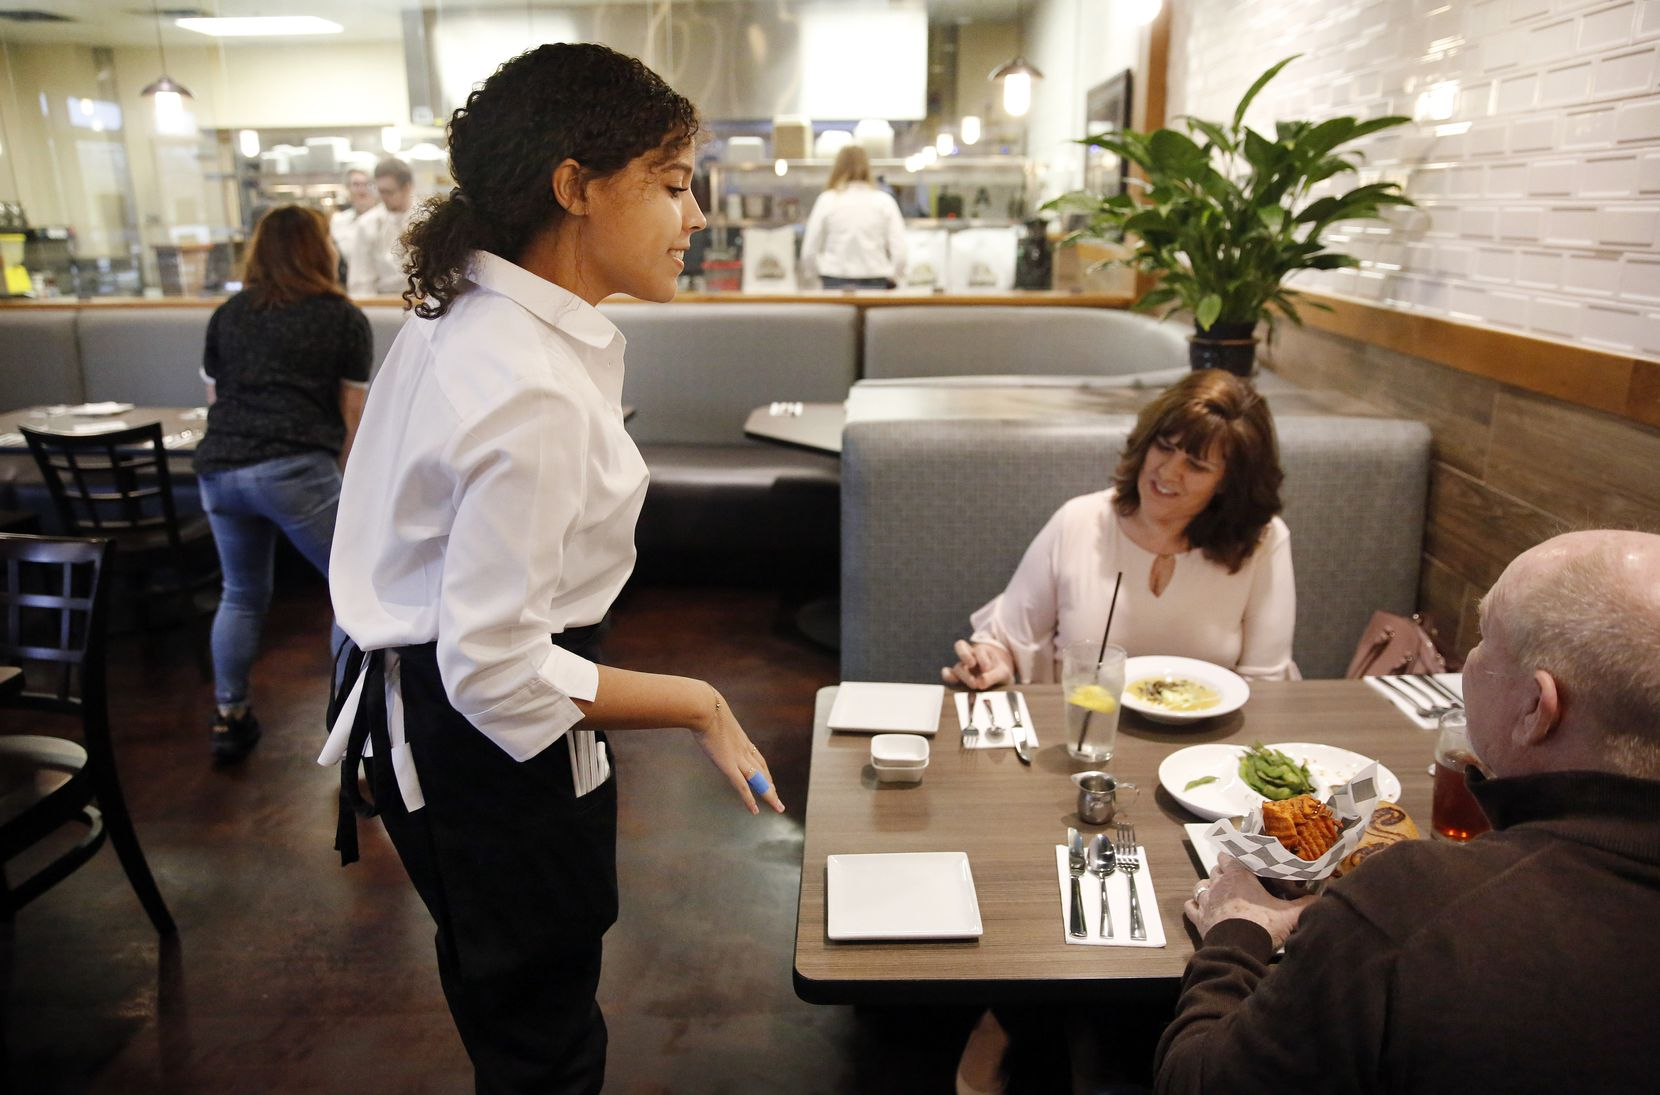 Culinary student Miranda Landis (left) serves Angela England (center) and her husband Chris England of Cedar Hill in the Savvy's Bistro at Ben Barber Innovation Academy in Mansfield.